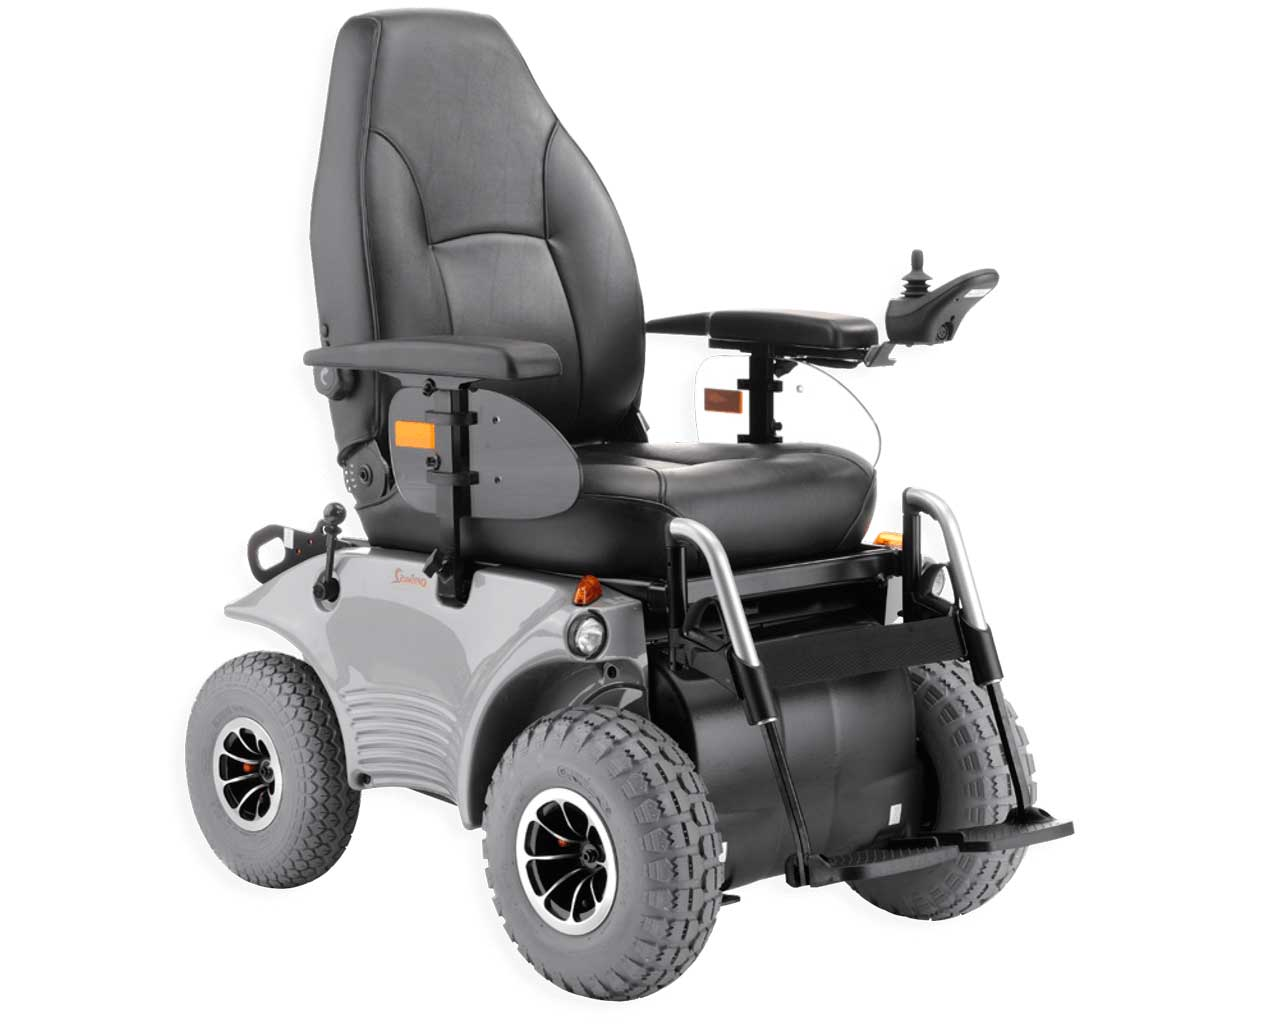 meyra optimus 2 powerchair electric wheelchair hire